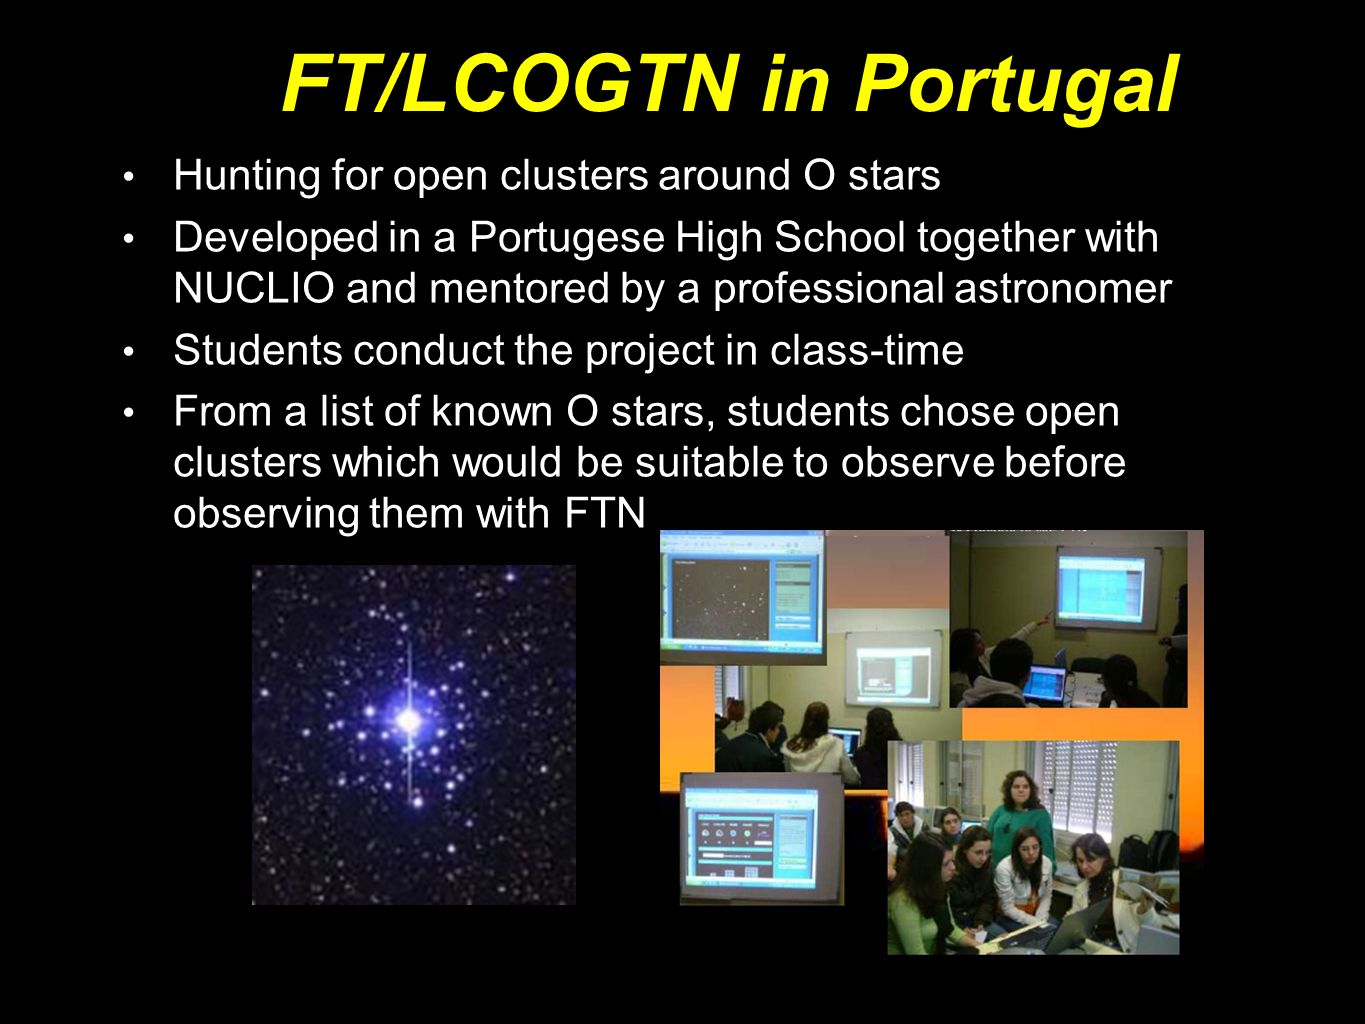 FT/LCOGTN in Portugal Hunting for open clusters around O stars Developed in a Portugese High School together with NUCLIO and mentored by a professional astronomer Students conduct the project in class-time From a list of known O stars, students chose open clusters which would be suitable to observe before observing them with FTN